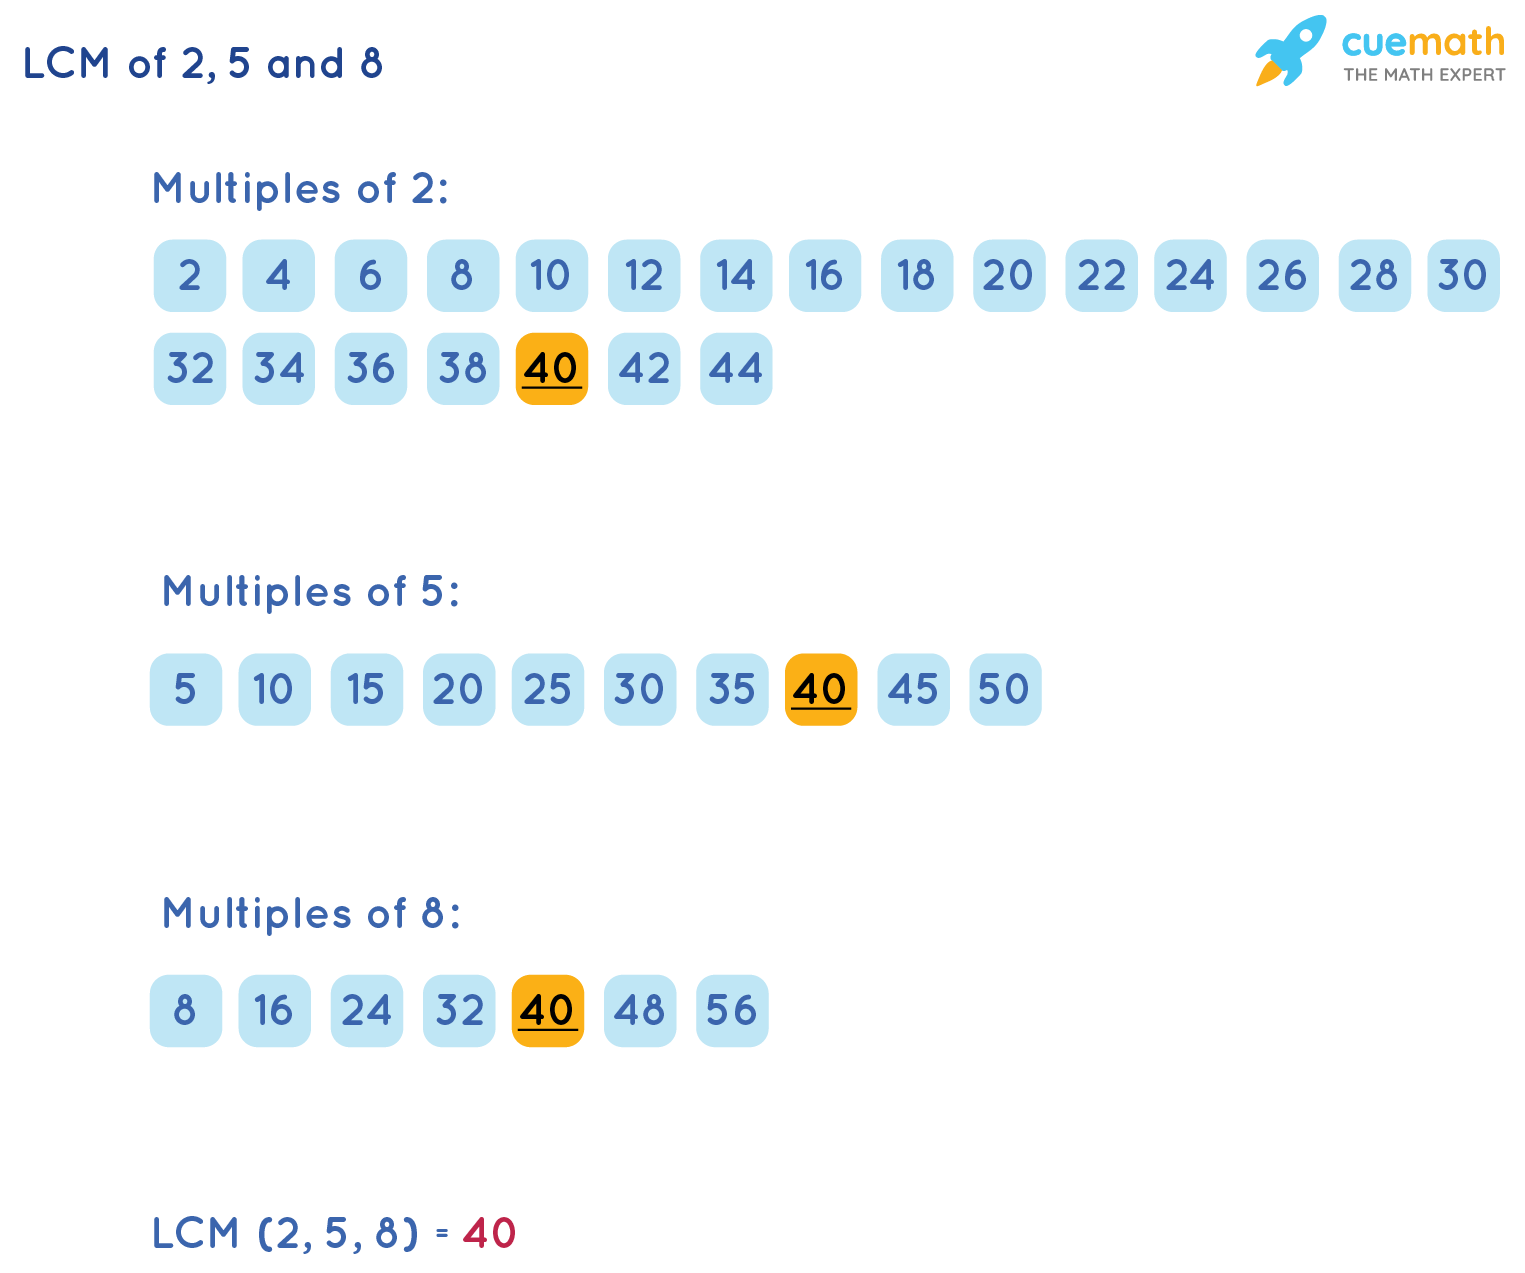 LCM of 2, 5 and 8 by Common Division Method